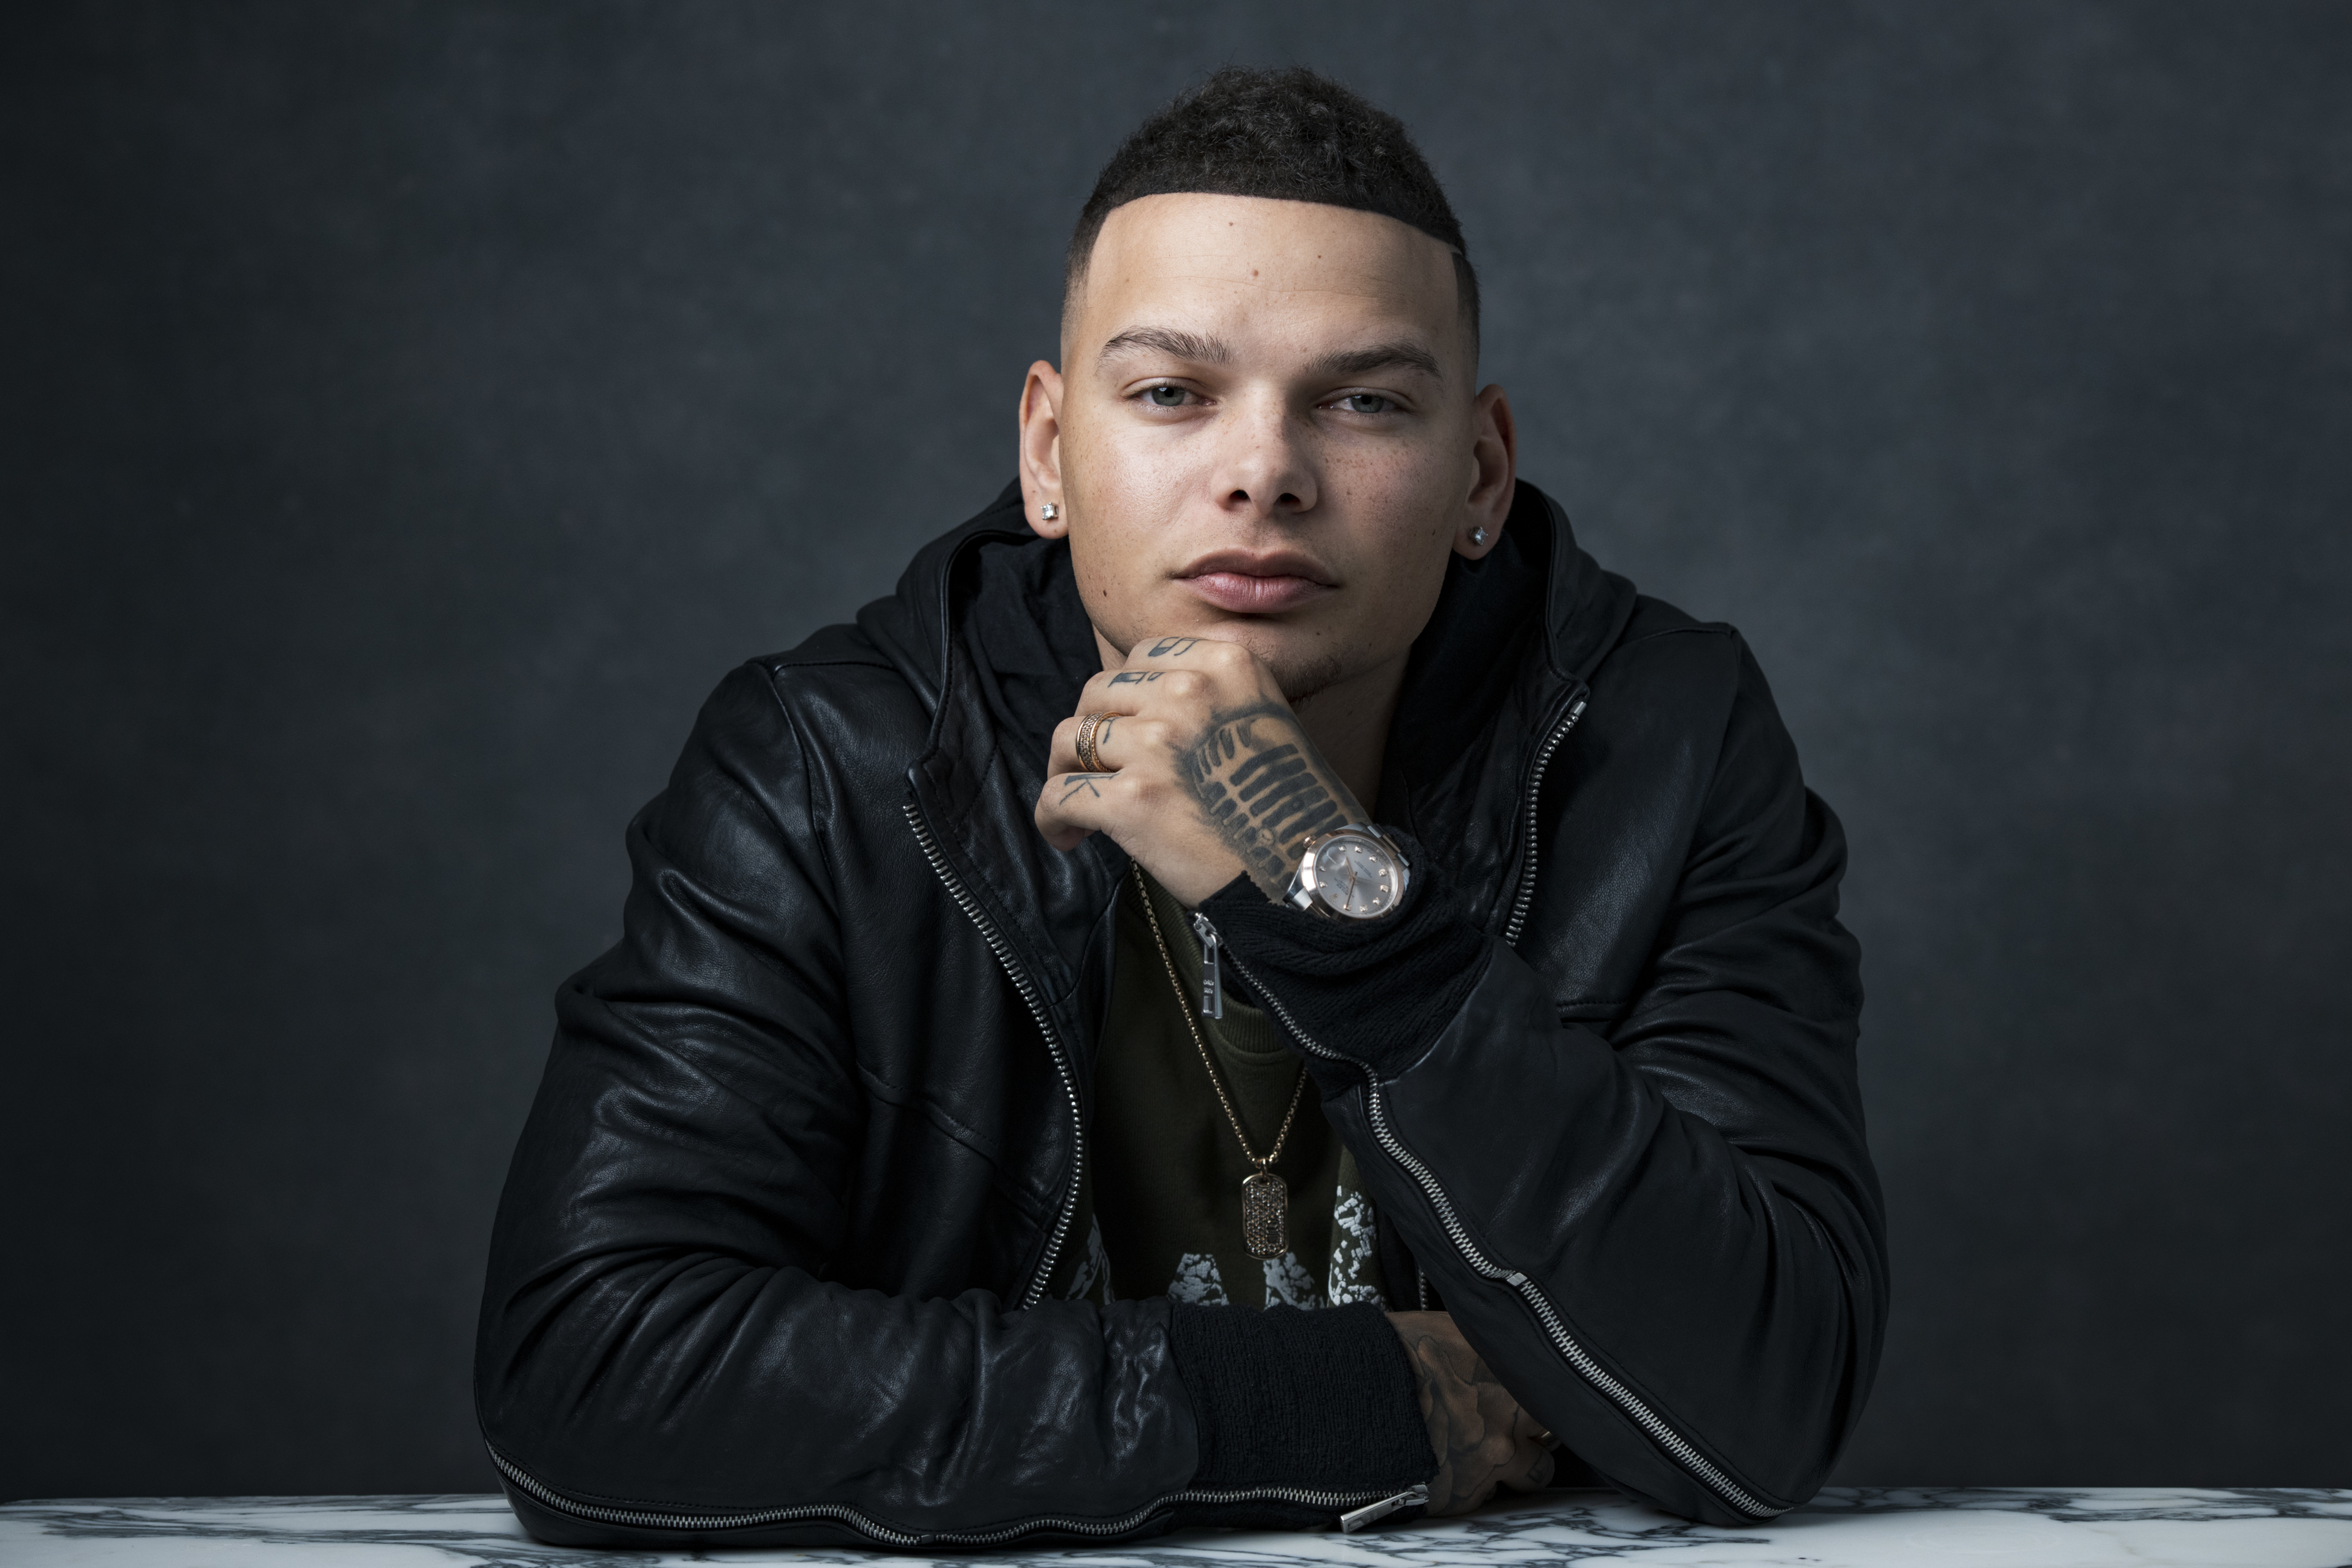 Westlake Legal Group AP19186554974078 Kane Brown mourns drummer, Kenny Dixon, who died in a car accident Tyler McCarthy fox-news/entertainment/music fox-news/entertainment/genres/viral fox-news/entertainment/genres/country fox-news/entertainment/events/departed fox news fnc/entertainment fnc article 737372d1-815d-567c-ab80-f46d204705c2